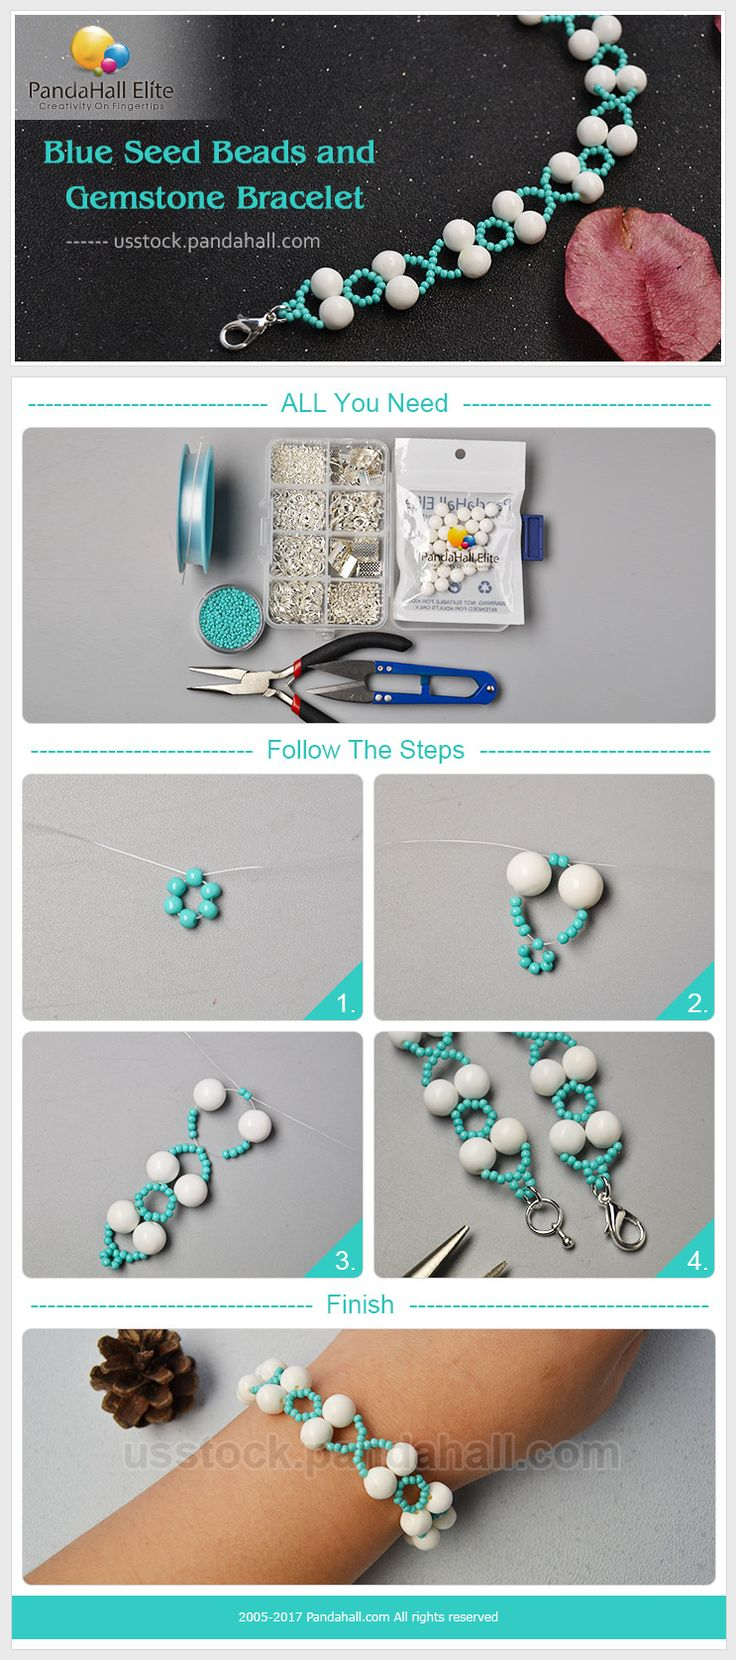 PandaHall Elite Craft Ideas: How to make bracelet with seed beads and gemstone beads #pandahallelite #craft #handmadebracelet #braceletdesign #seedbeads #craft